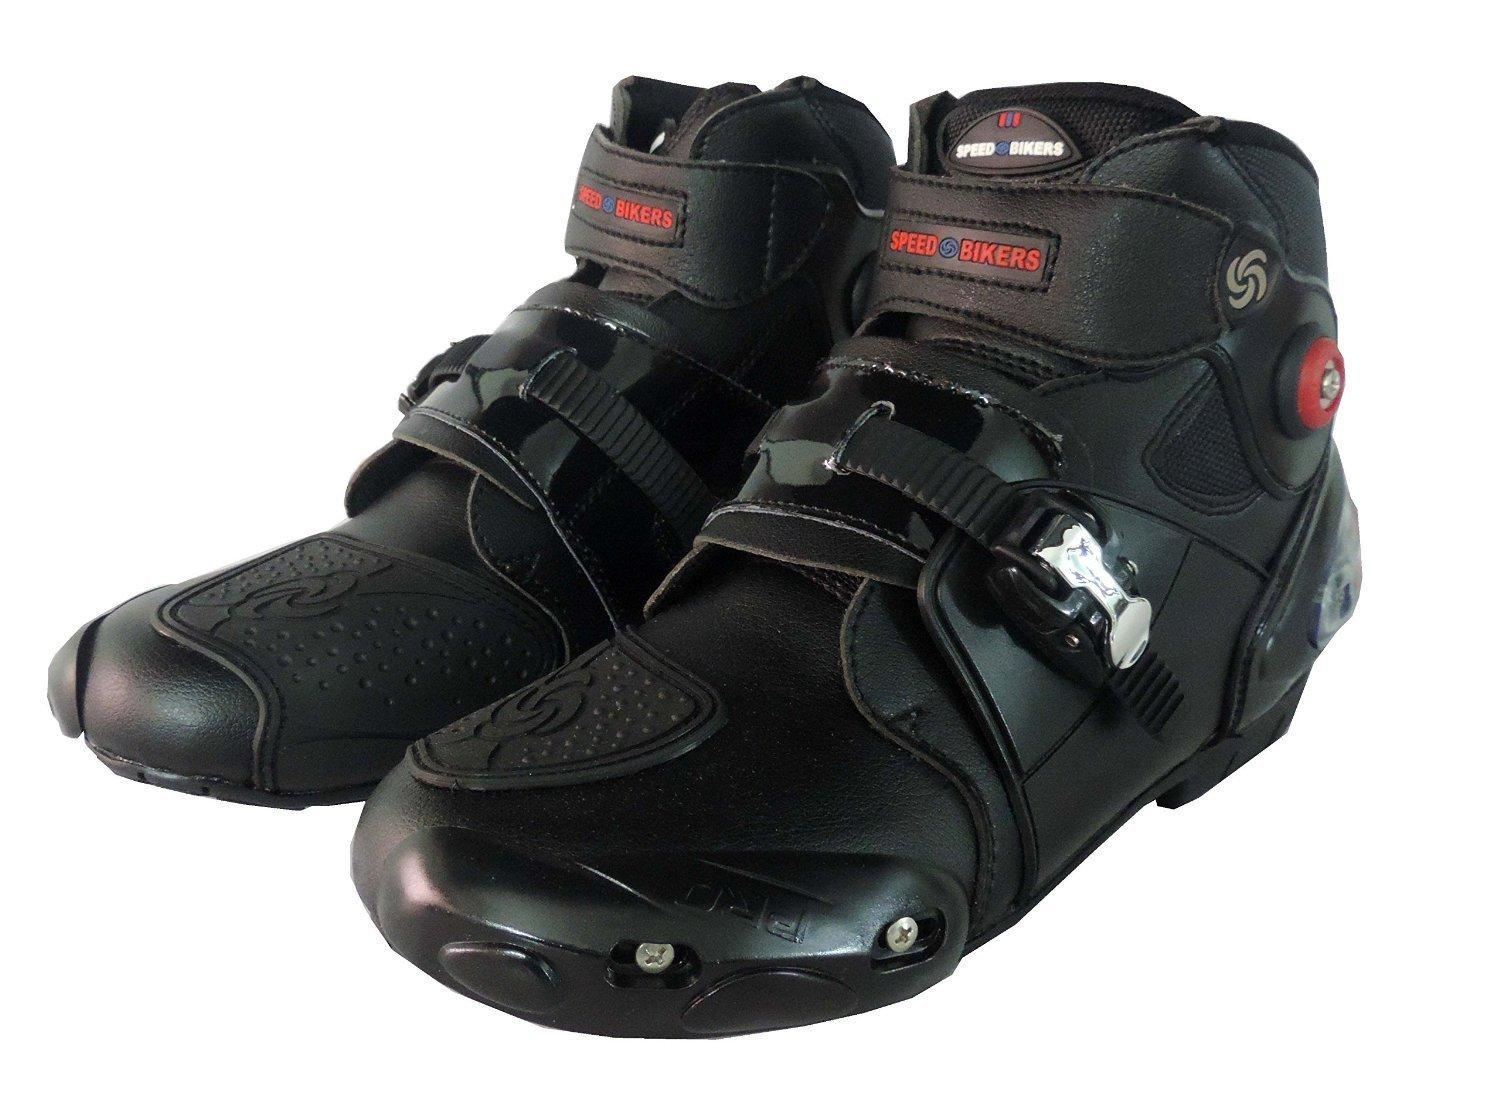 95dbd8d3b19 PROBIKER SPEED LOW CUT leather racing motocross boots motorcycles moto shoes  racing pro biker motorcycle boots